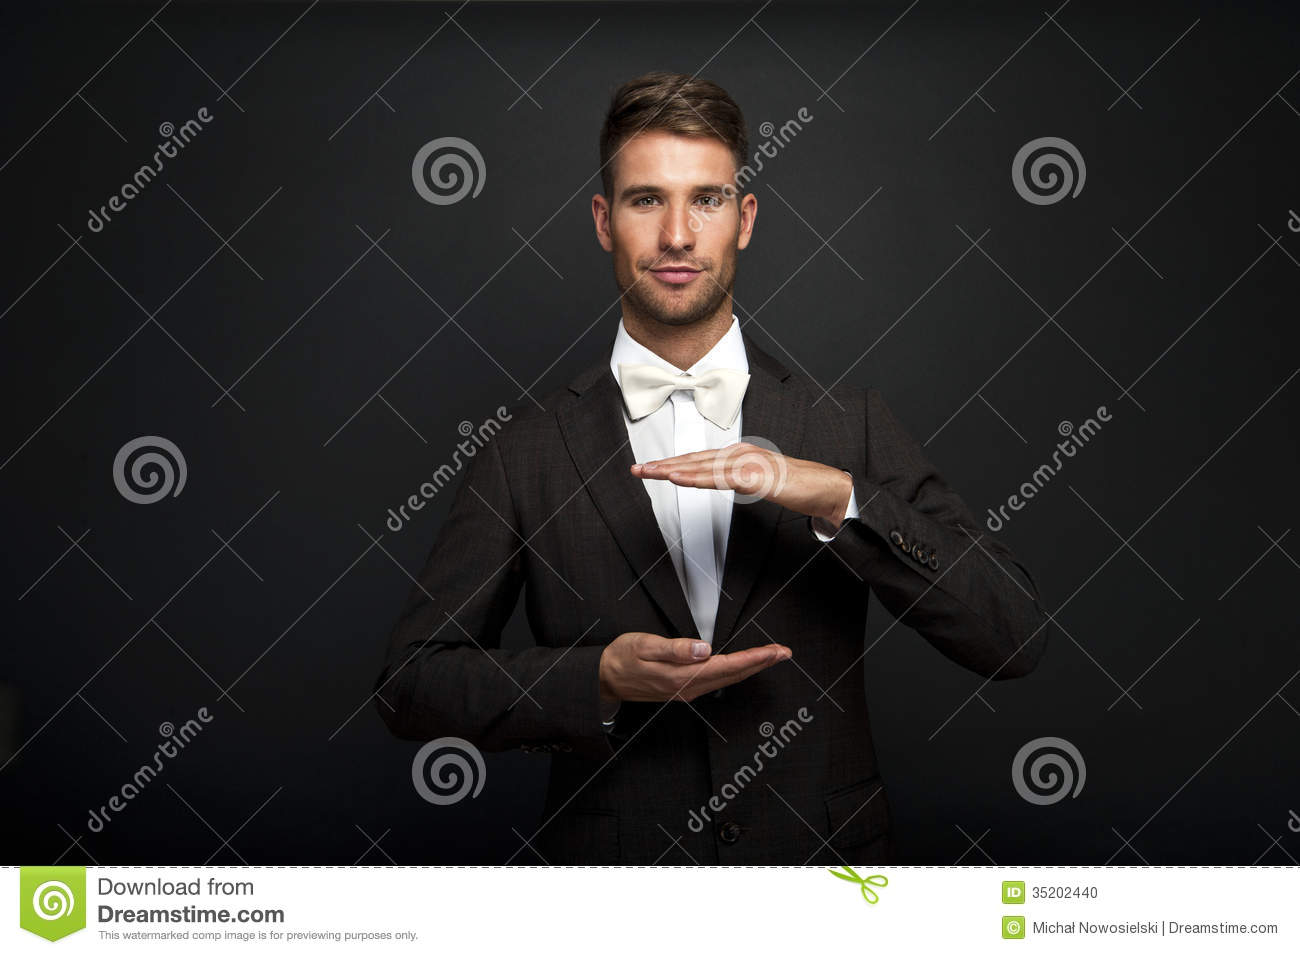 Technology Management Image: Business Man With Cupped Hands As If Holding Something